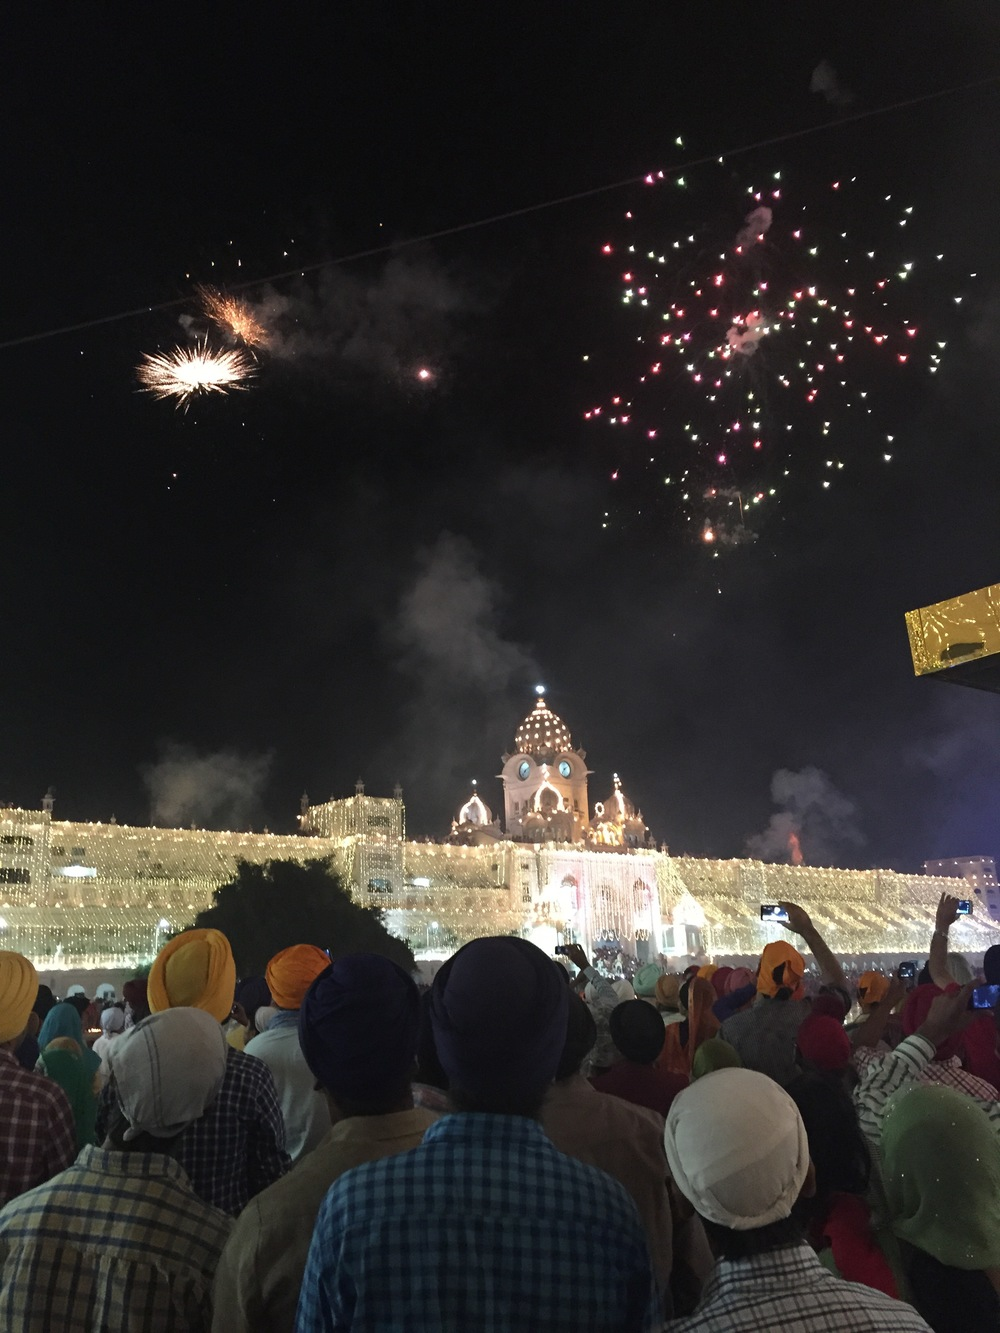 Fireworks came later over the Golden Temple. The festival signify light's rule over darkness and the power of good over evil.